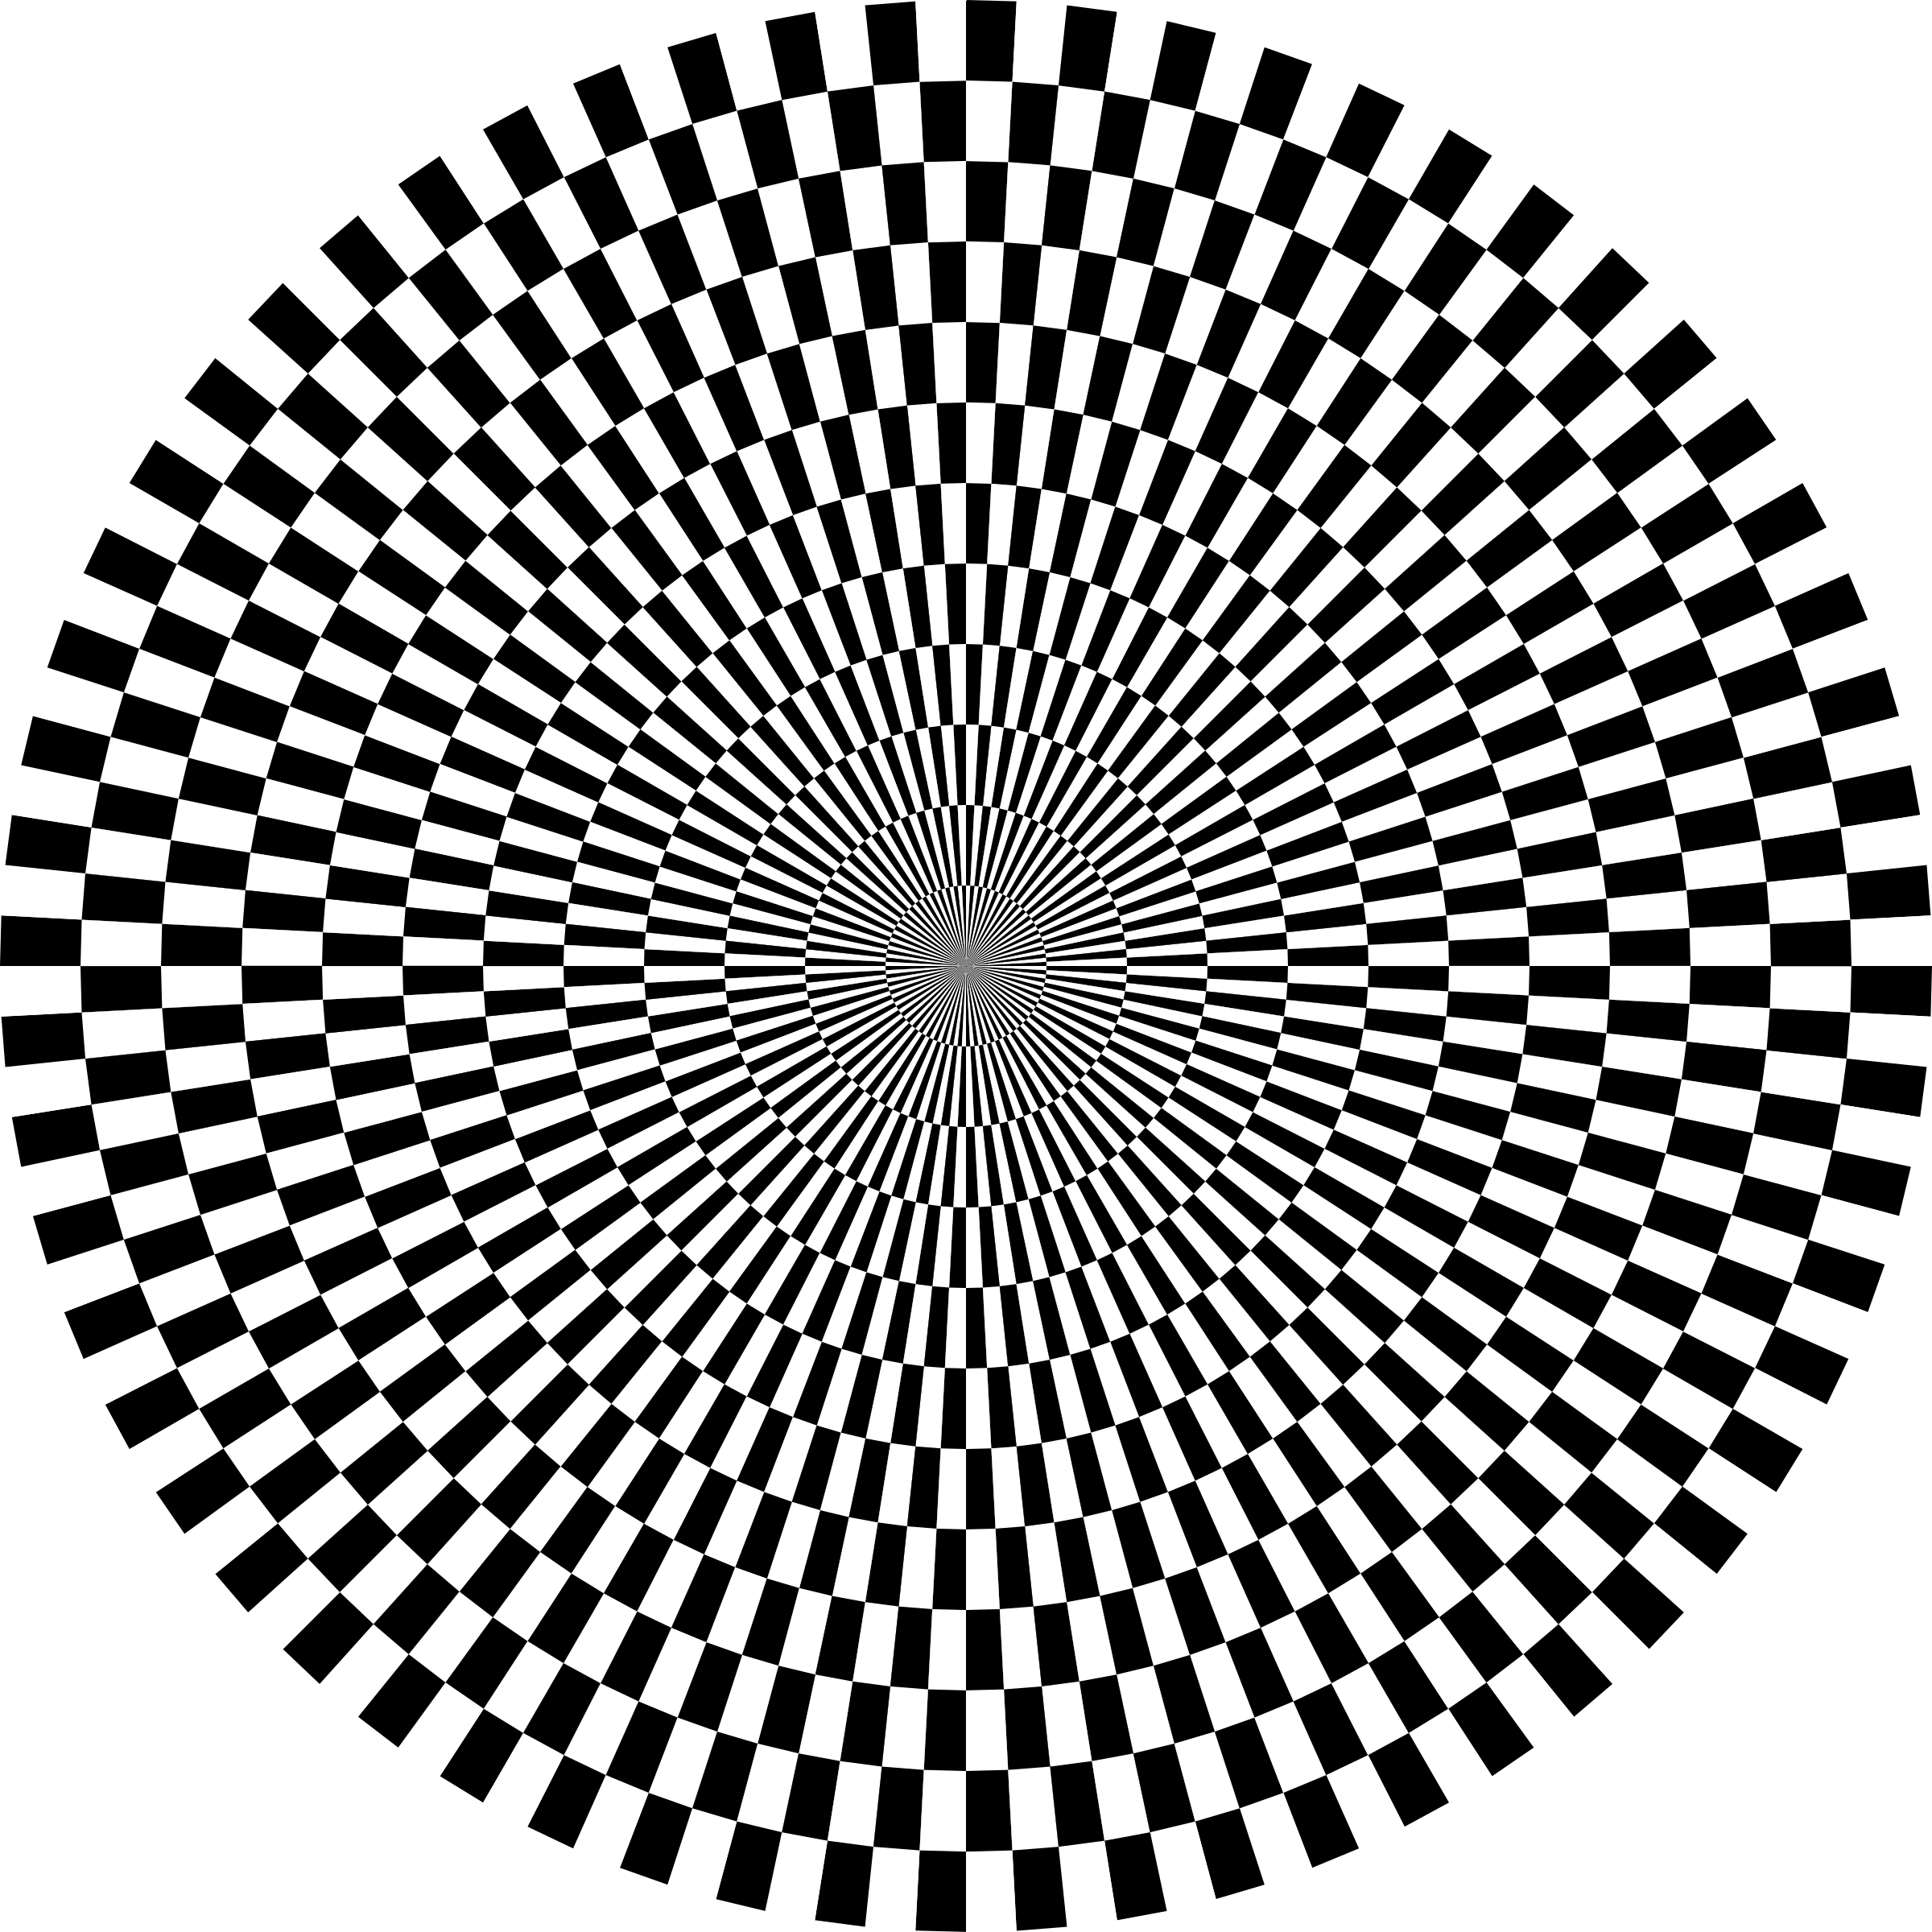 120gon chessboard tunnel by 10binary